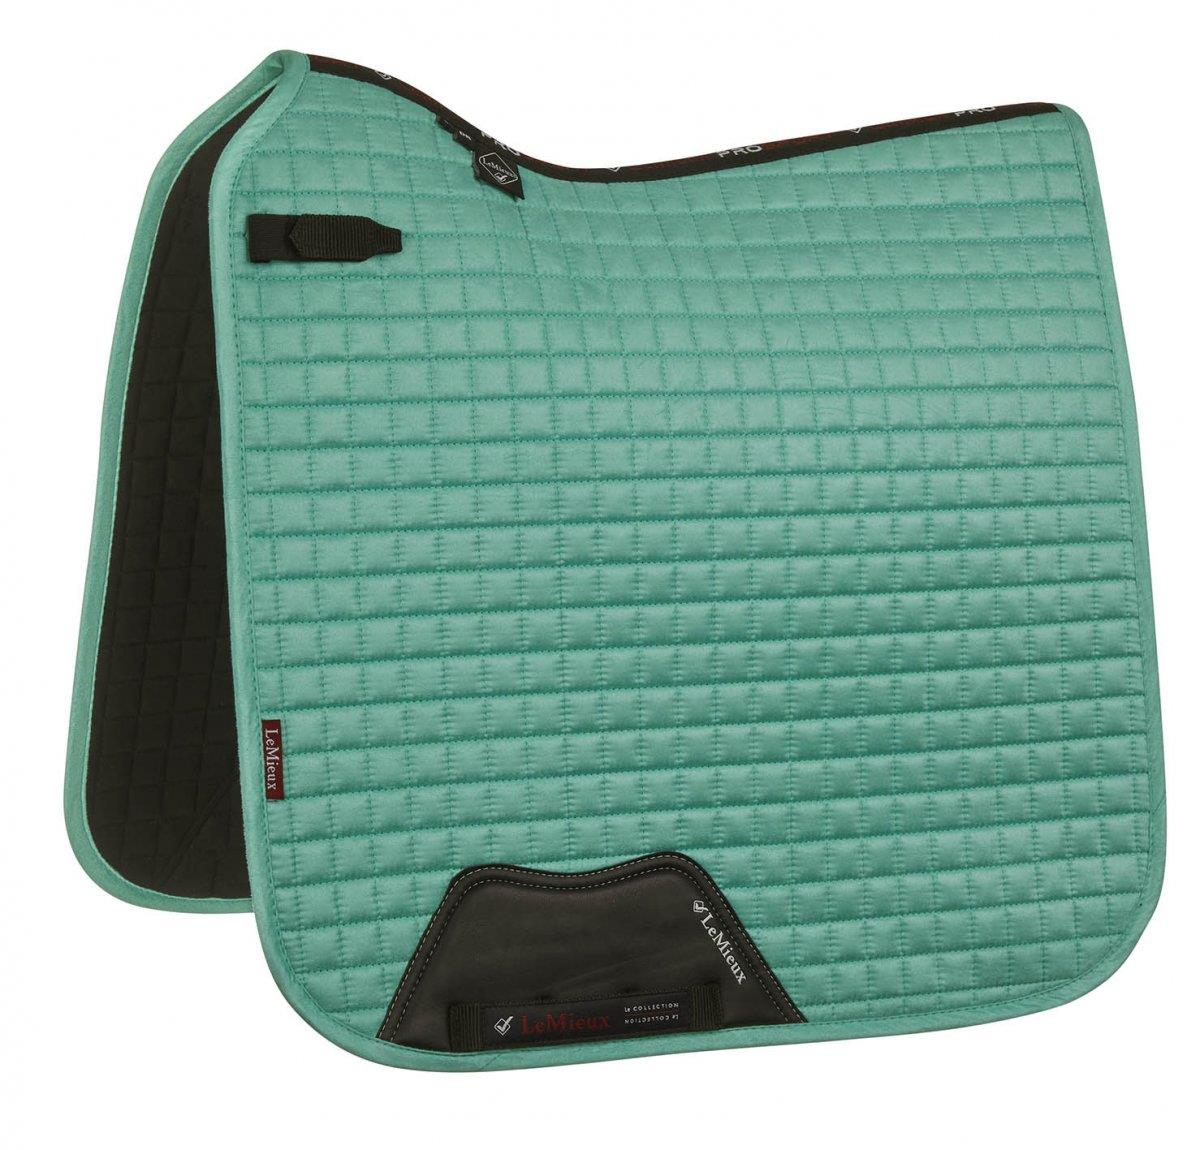 LeMieux-Prosport-Suede-Dressage-Square-Saddlecloth-All-Colours miniature 22